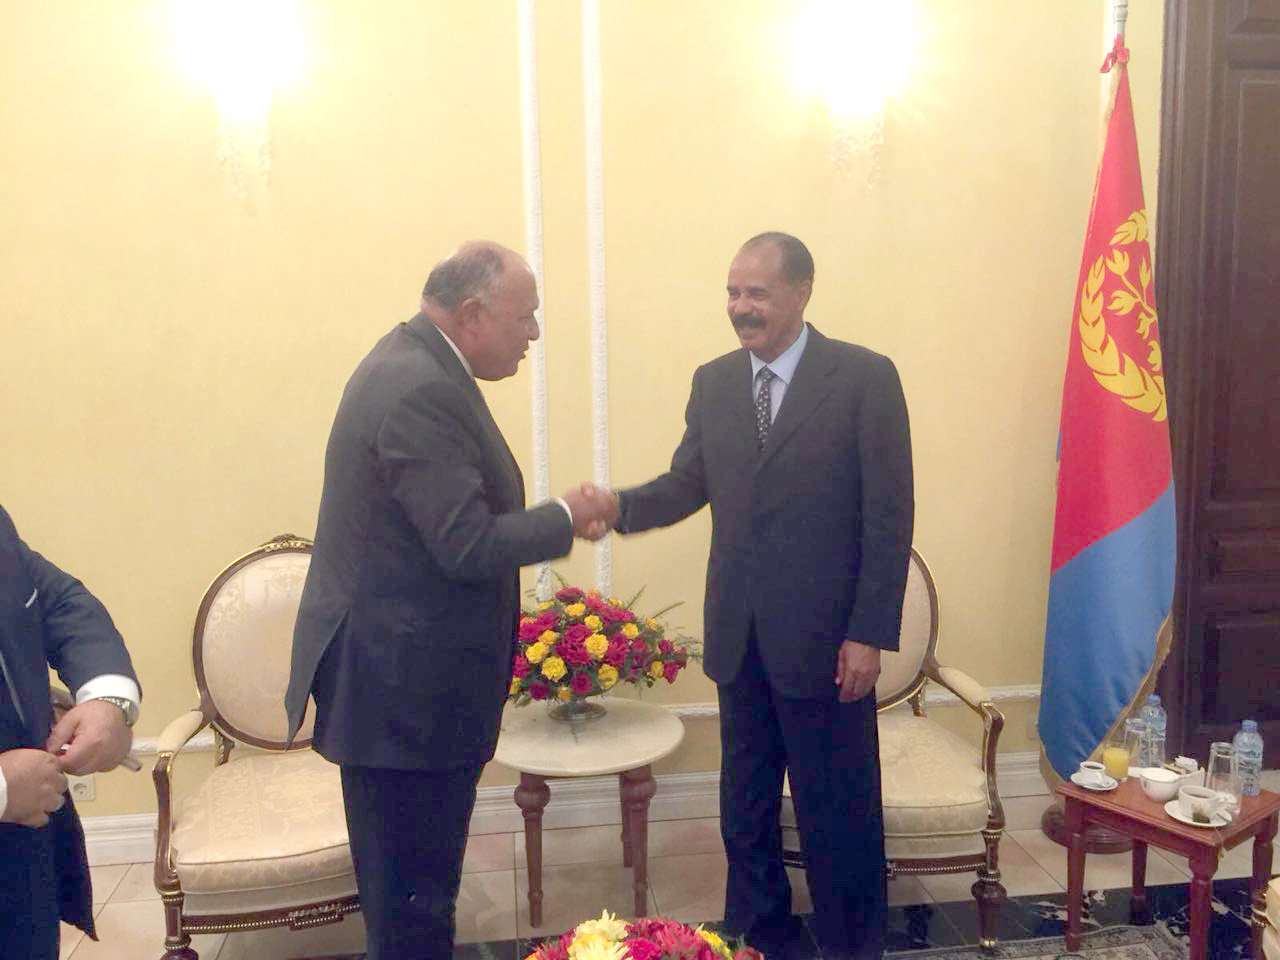 Egyptian Foreign Minister Sameh Shoukry (L) meets with Eritrean President Isaias Afwerki, on September 13. (Egyptian Foreign Ministry)